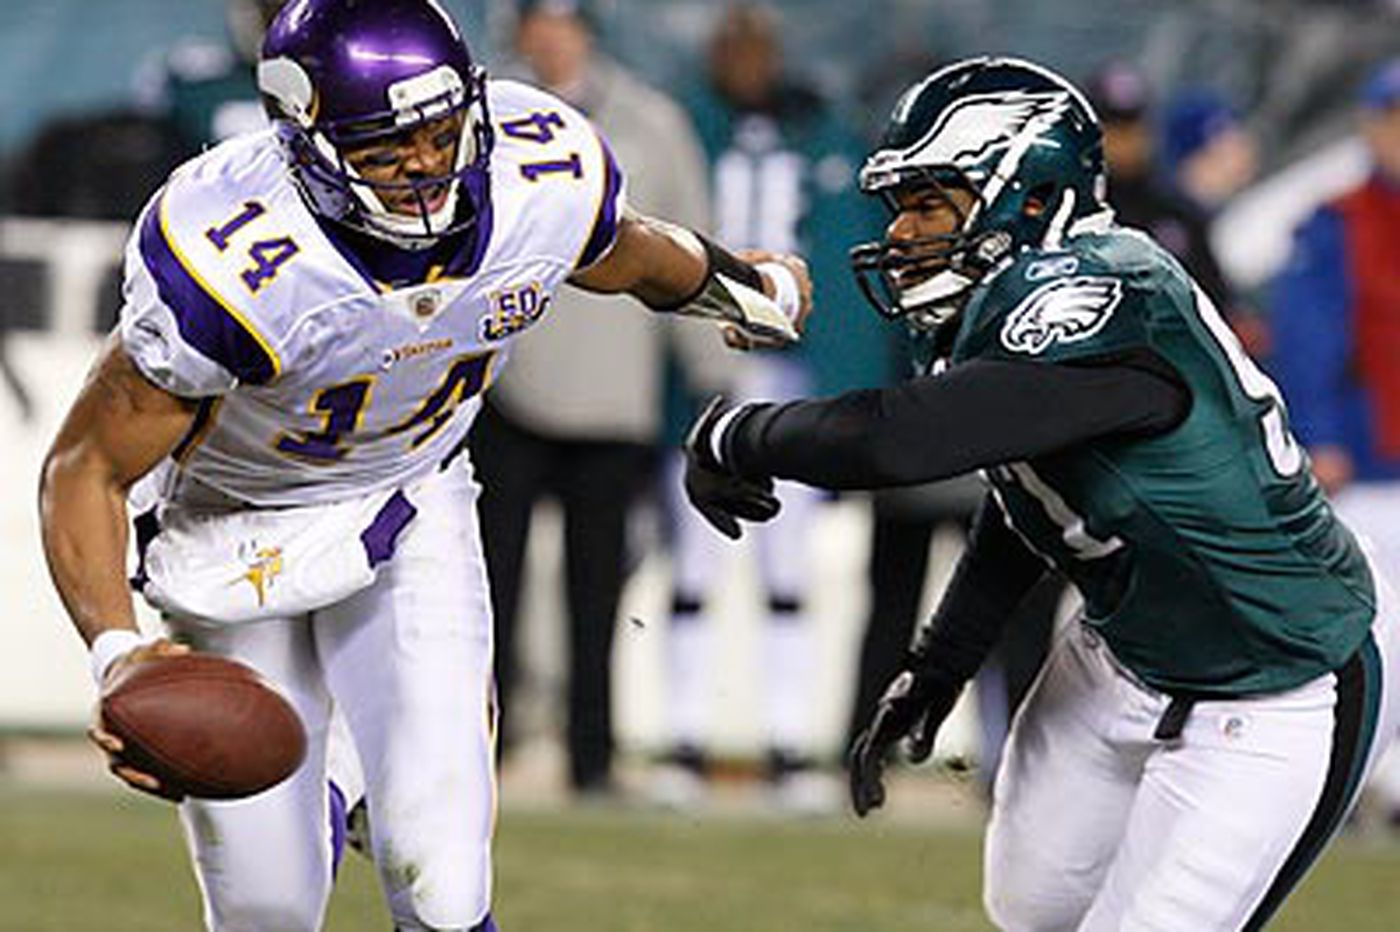 Rich Hofmann: Eagles' defense needs to clear the air after bad showing against Vikings